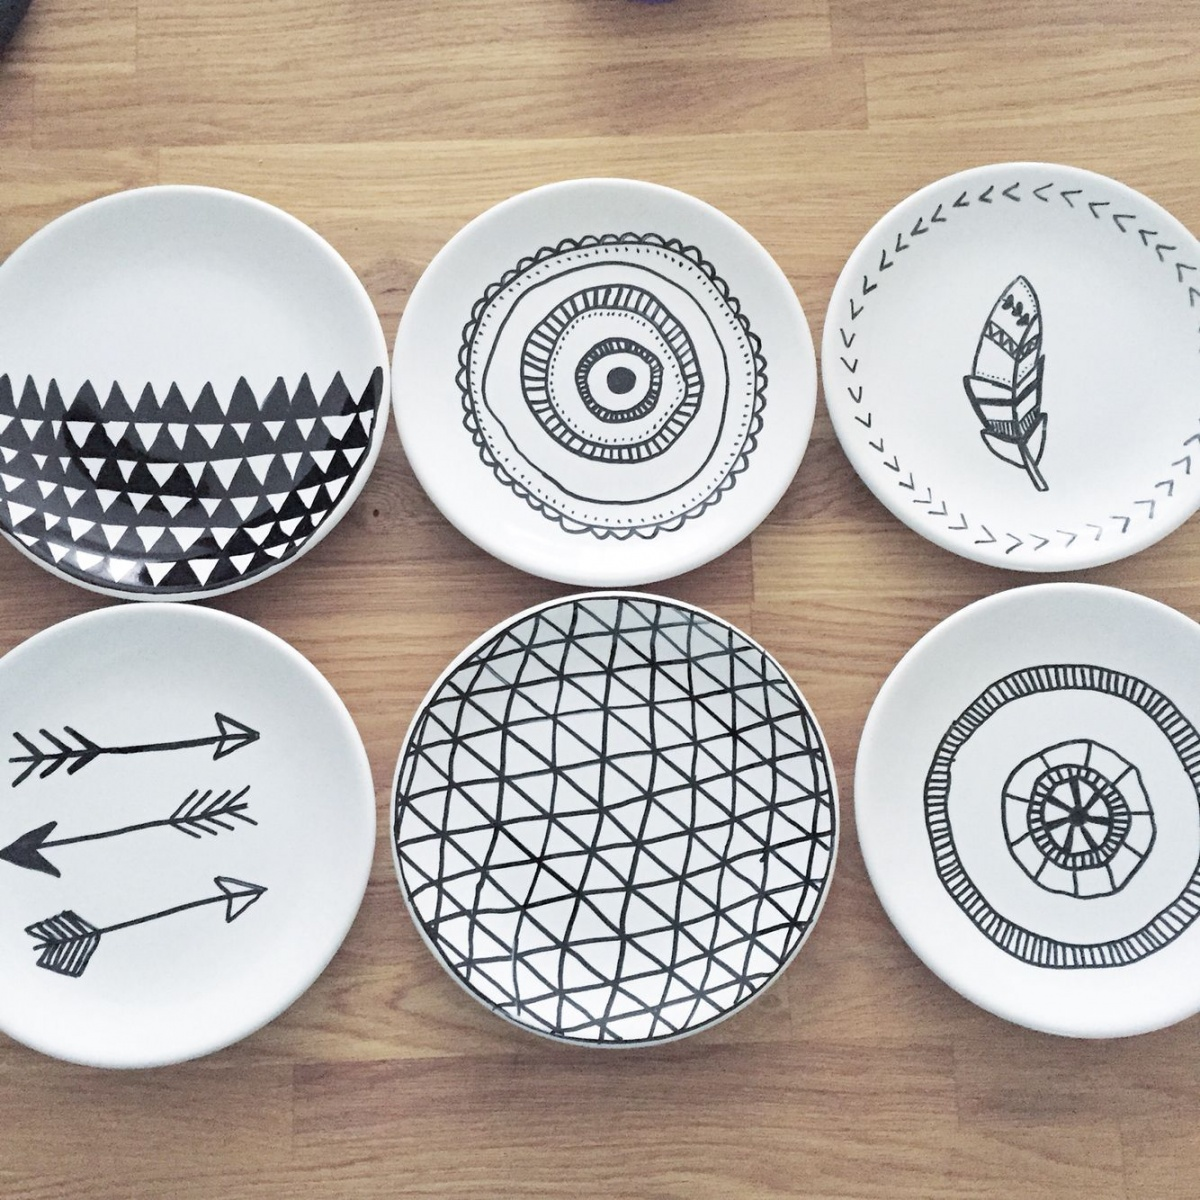 The doodle plate